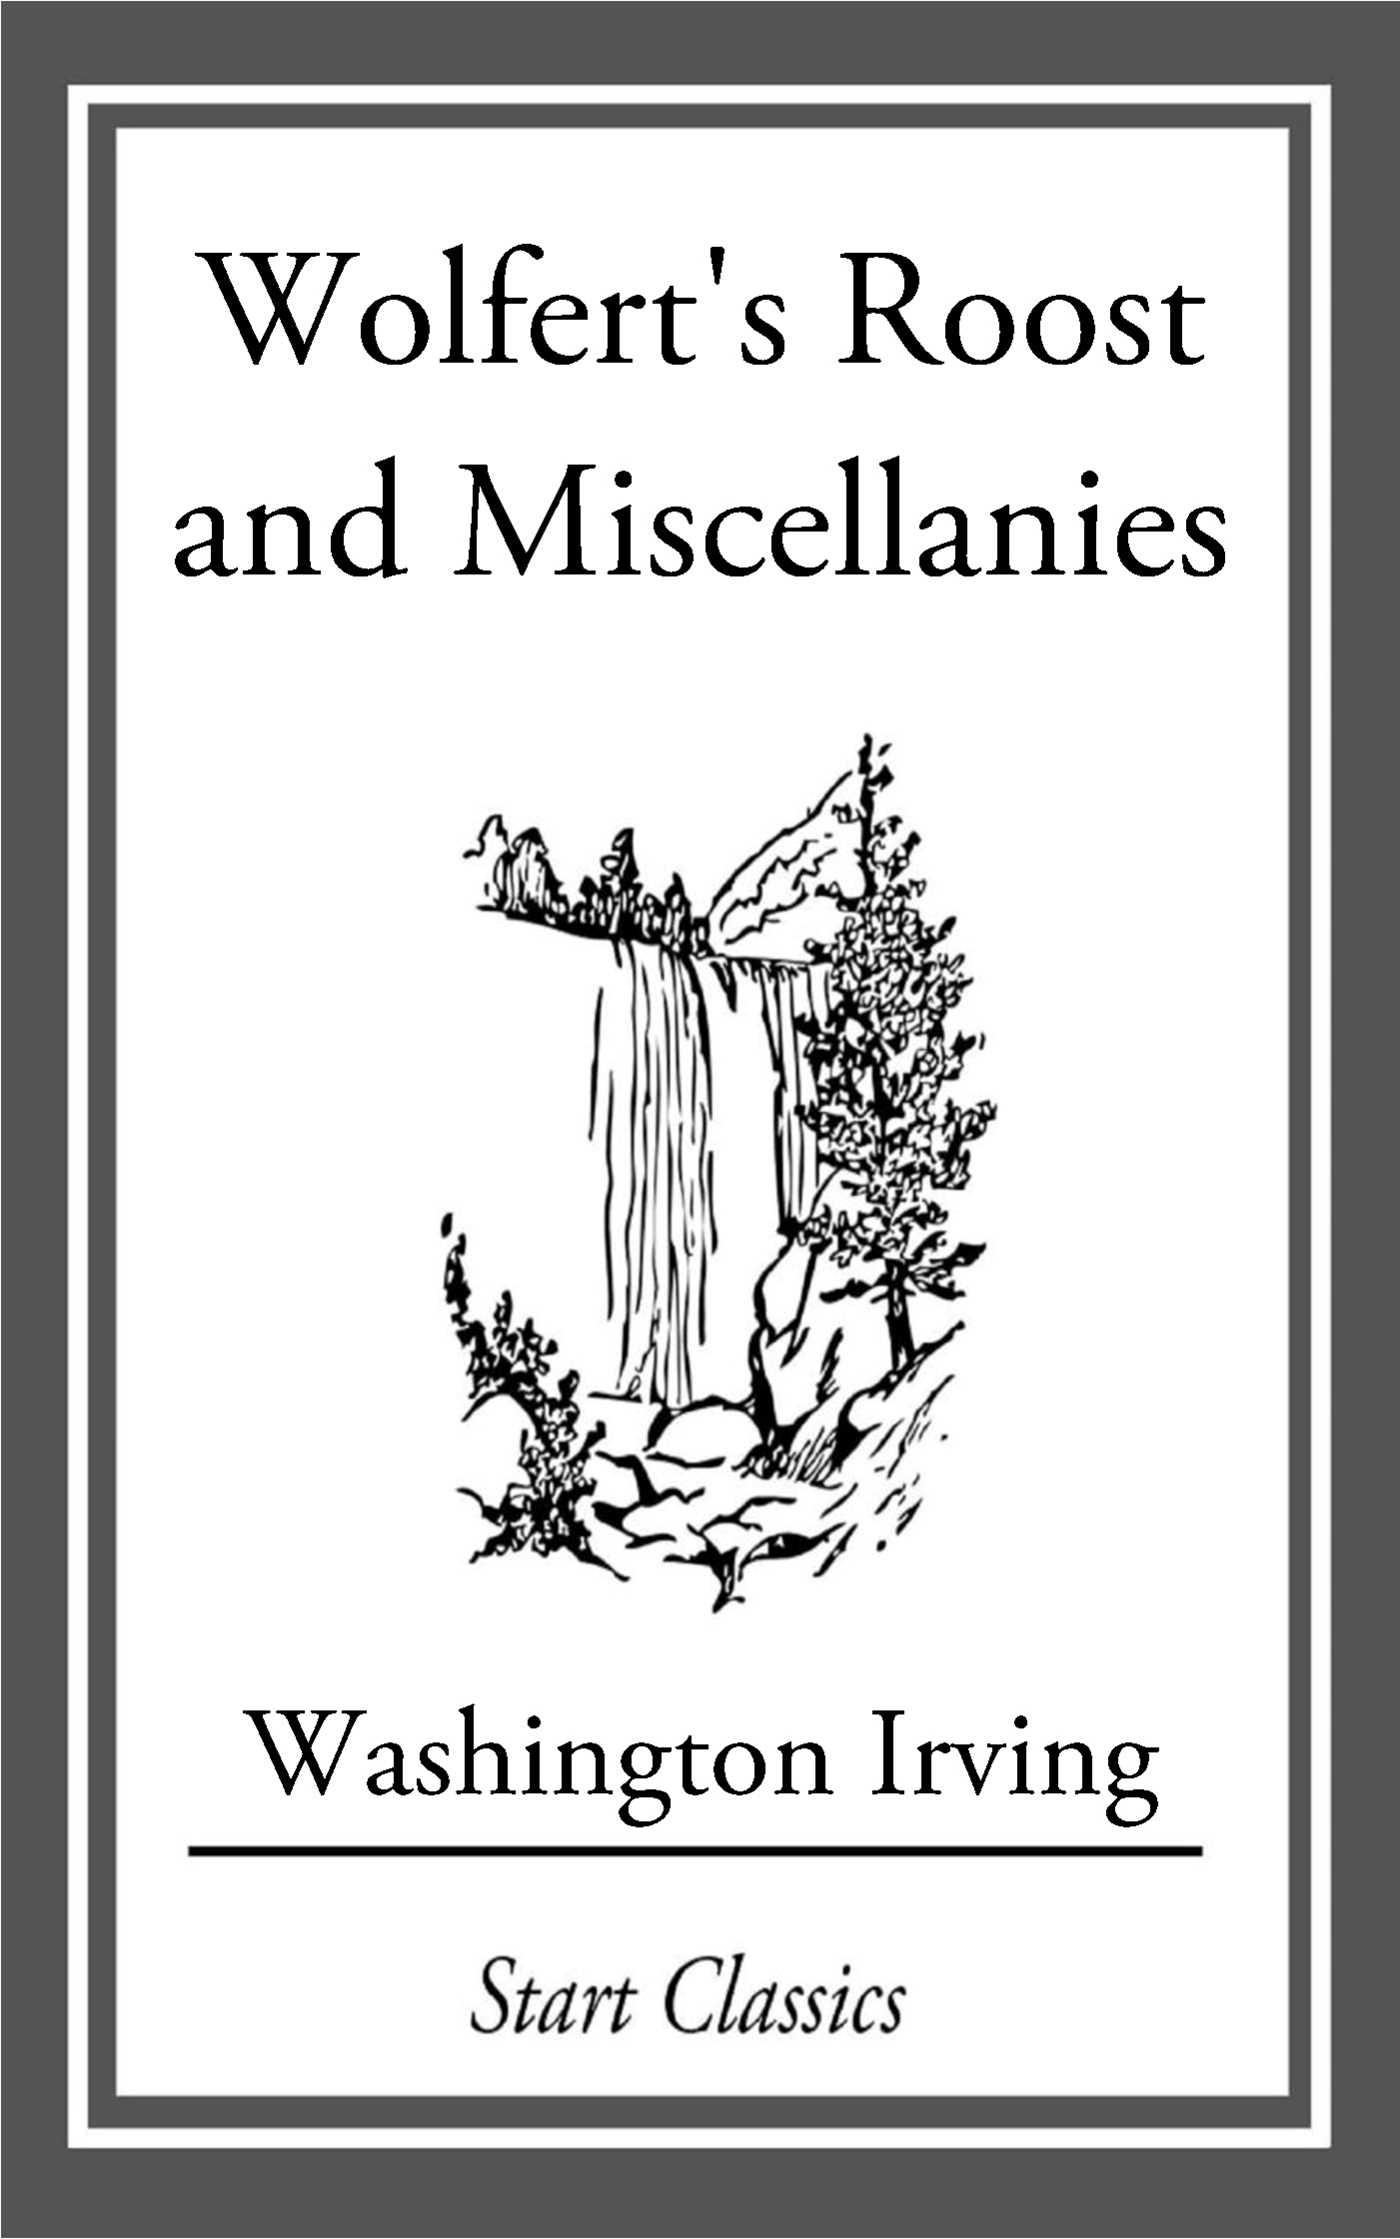 a biography of washington irving one of the first american writers to earn acclaim in europe Famous nineteenth century american authors washington irving (1783-1859)  named after  irving was one of the first great american authors to advocate  writing as a profession  his literary masterpiece, moby dick, did not gain  acclaim until years after his death  timeline of european history and american  history.